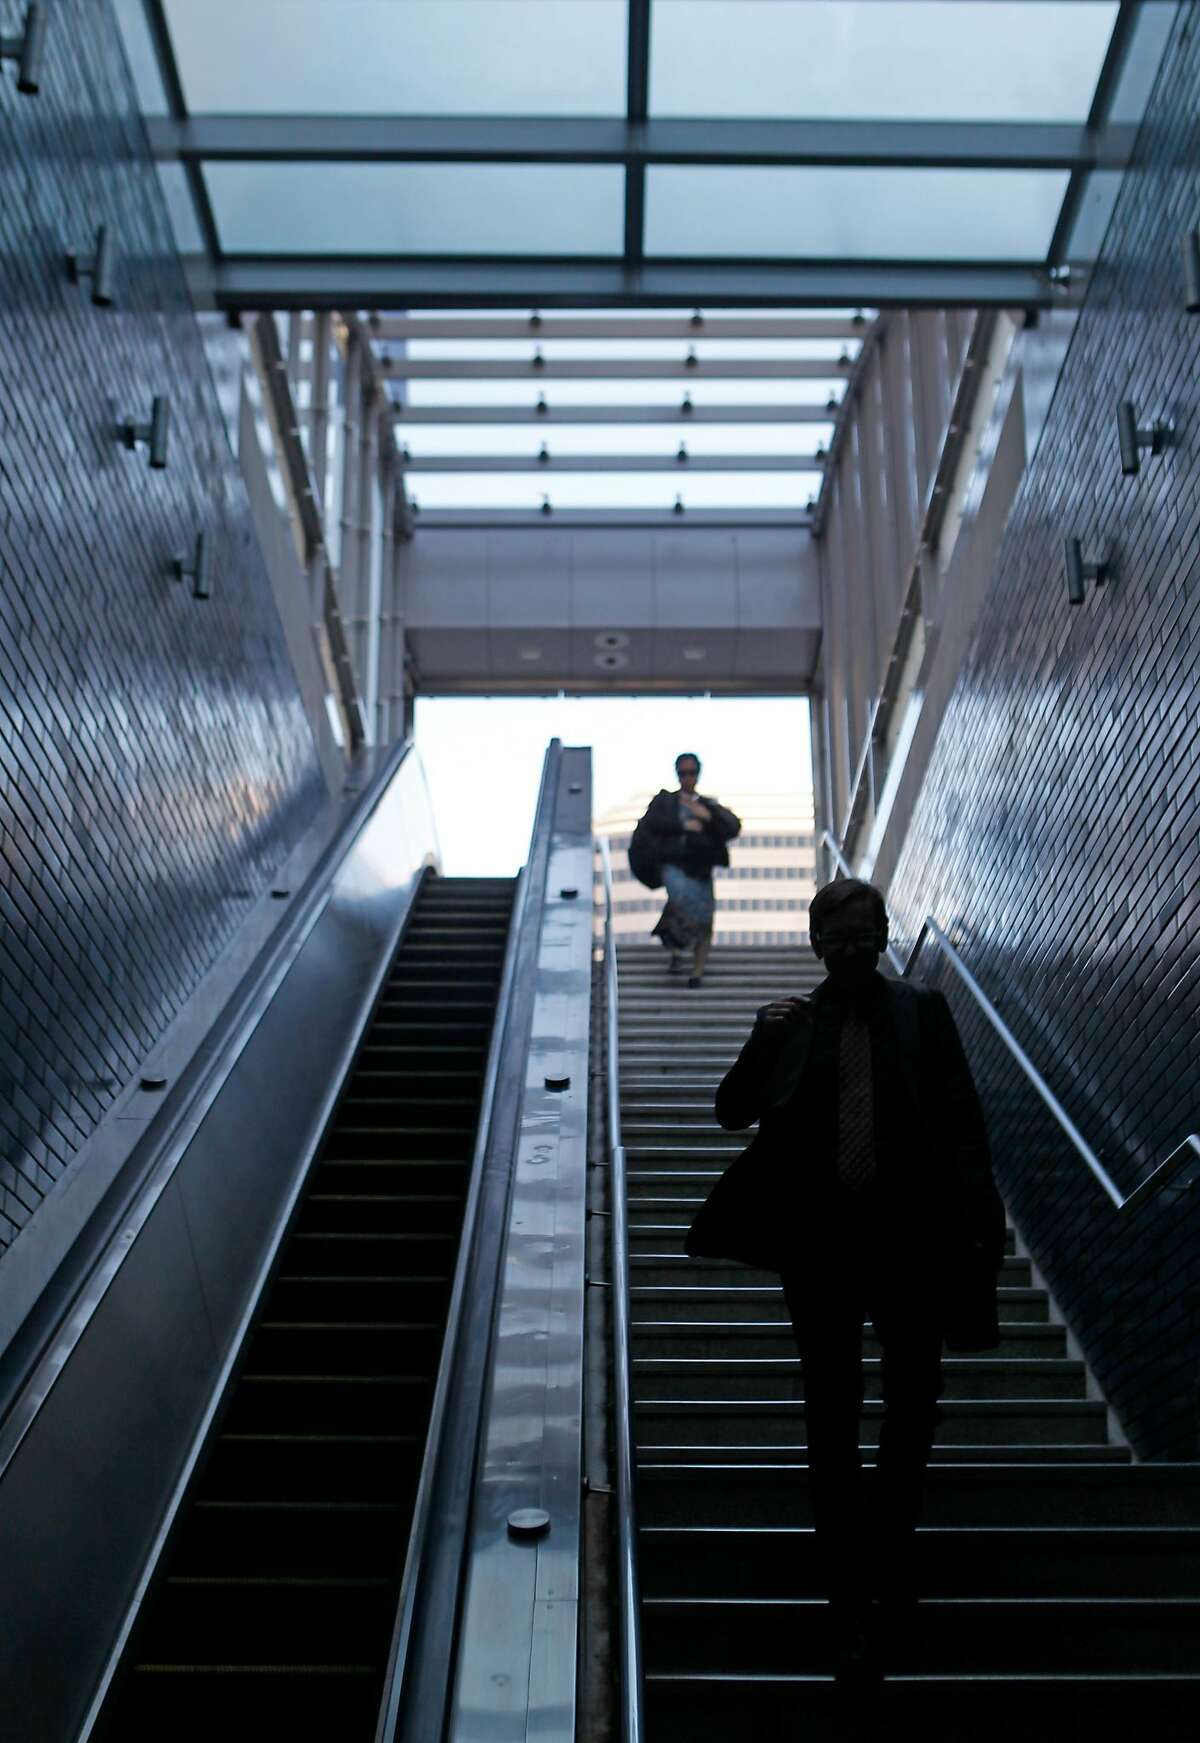 Commuters enter 19th Street BART through the new canopy over the entrance at 20th and Broadway streets in Oakland, Calif. is opened to the public Friday, March 6, 2015.